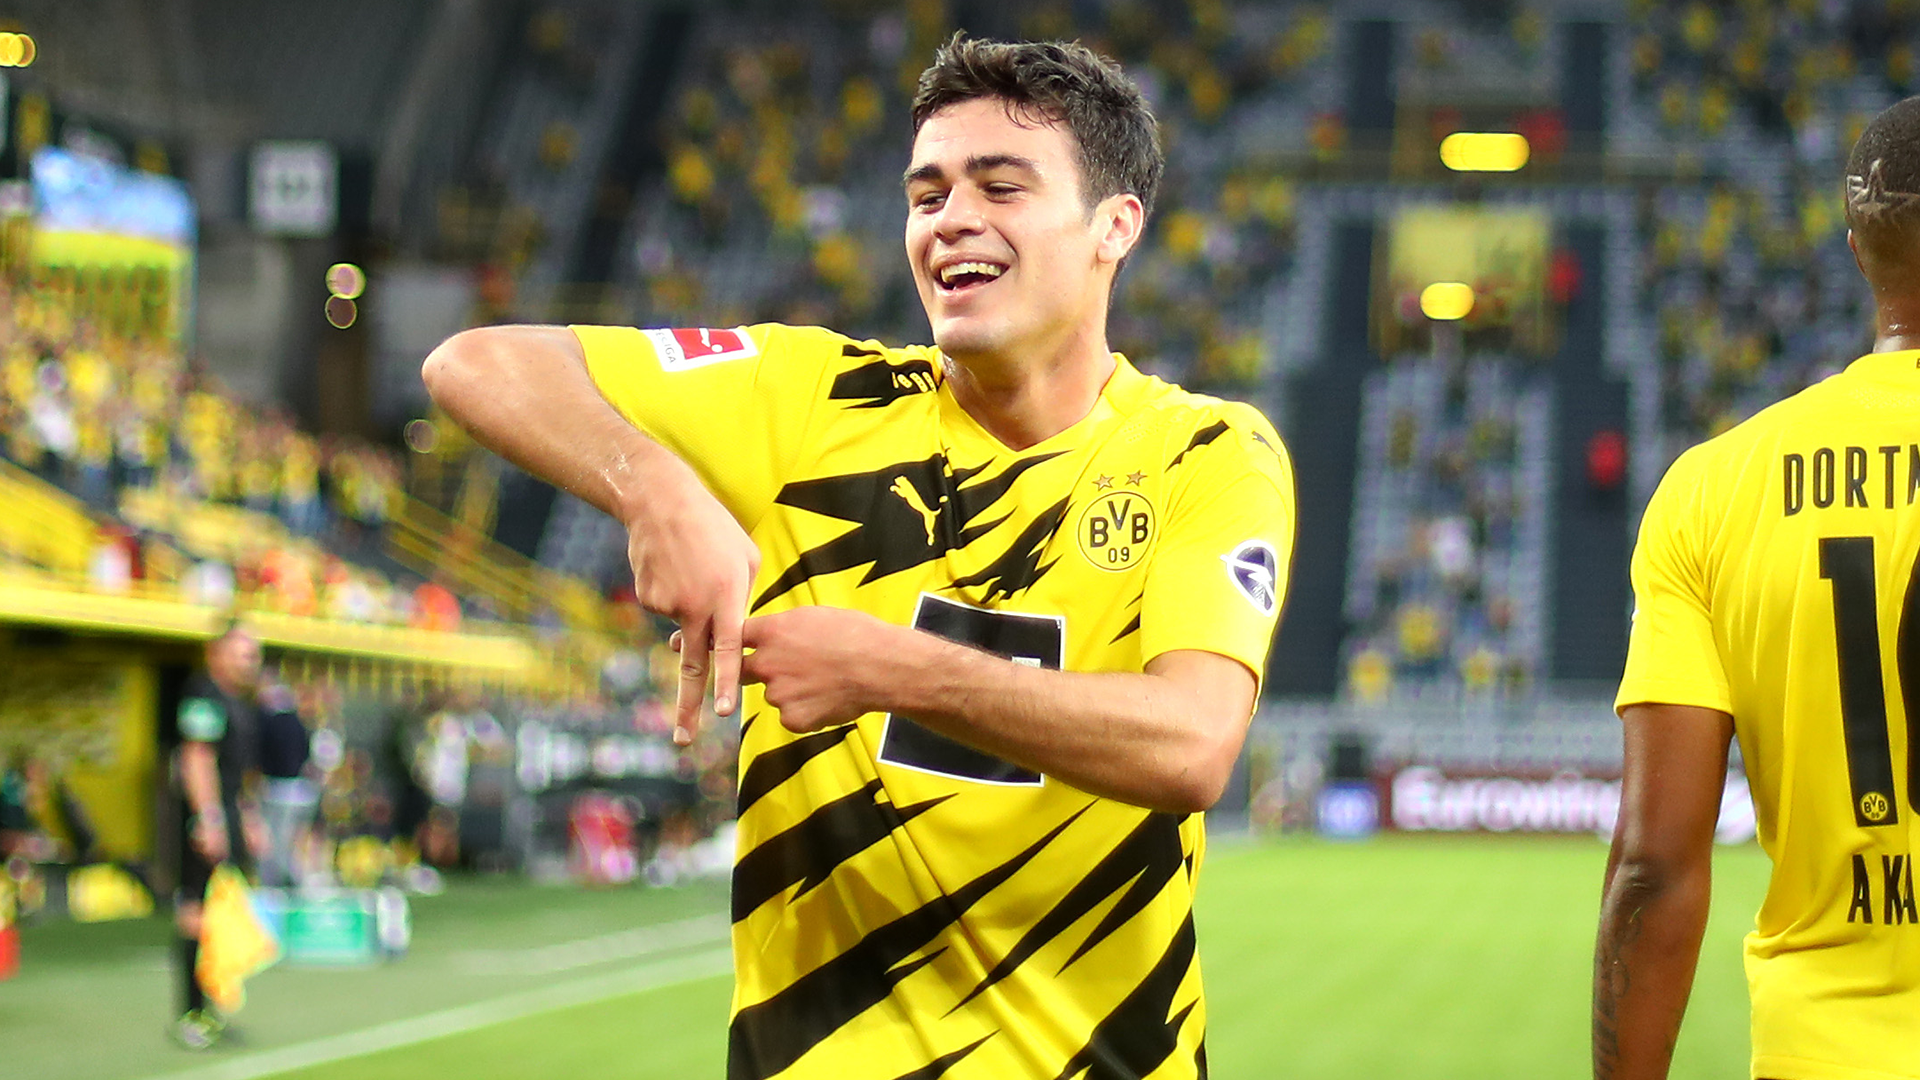 Dortmund Have Won The Lottery With Reyna USNMT Youngster Has Same Potential As Pulisic Says BVB Director Goal com